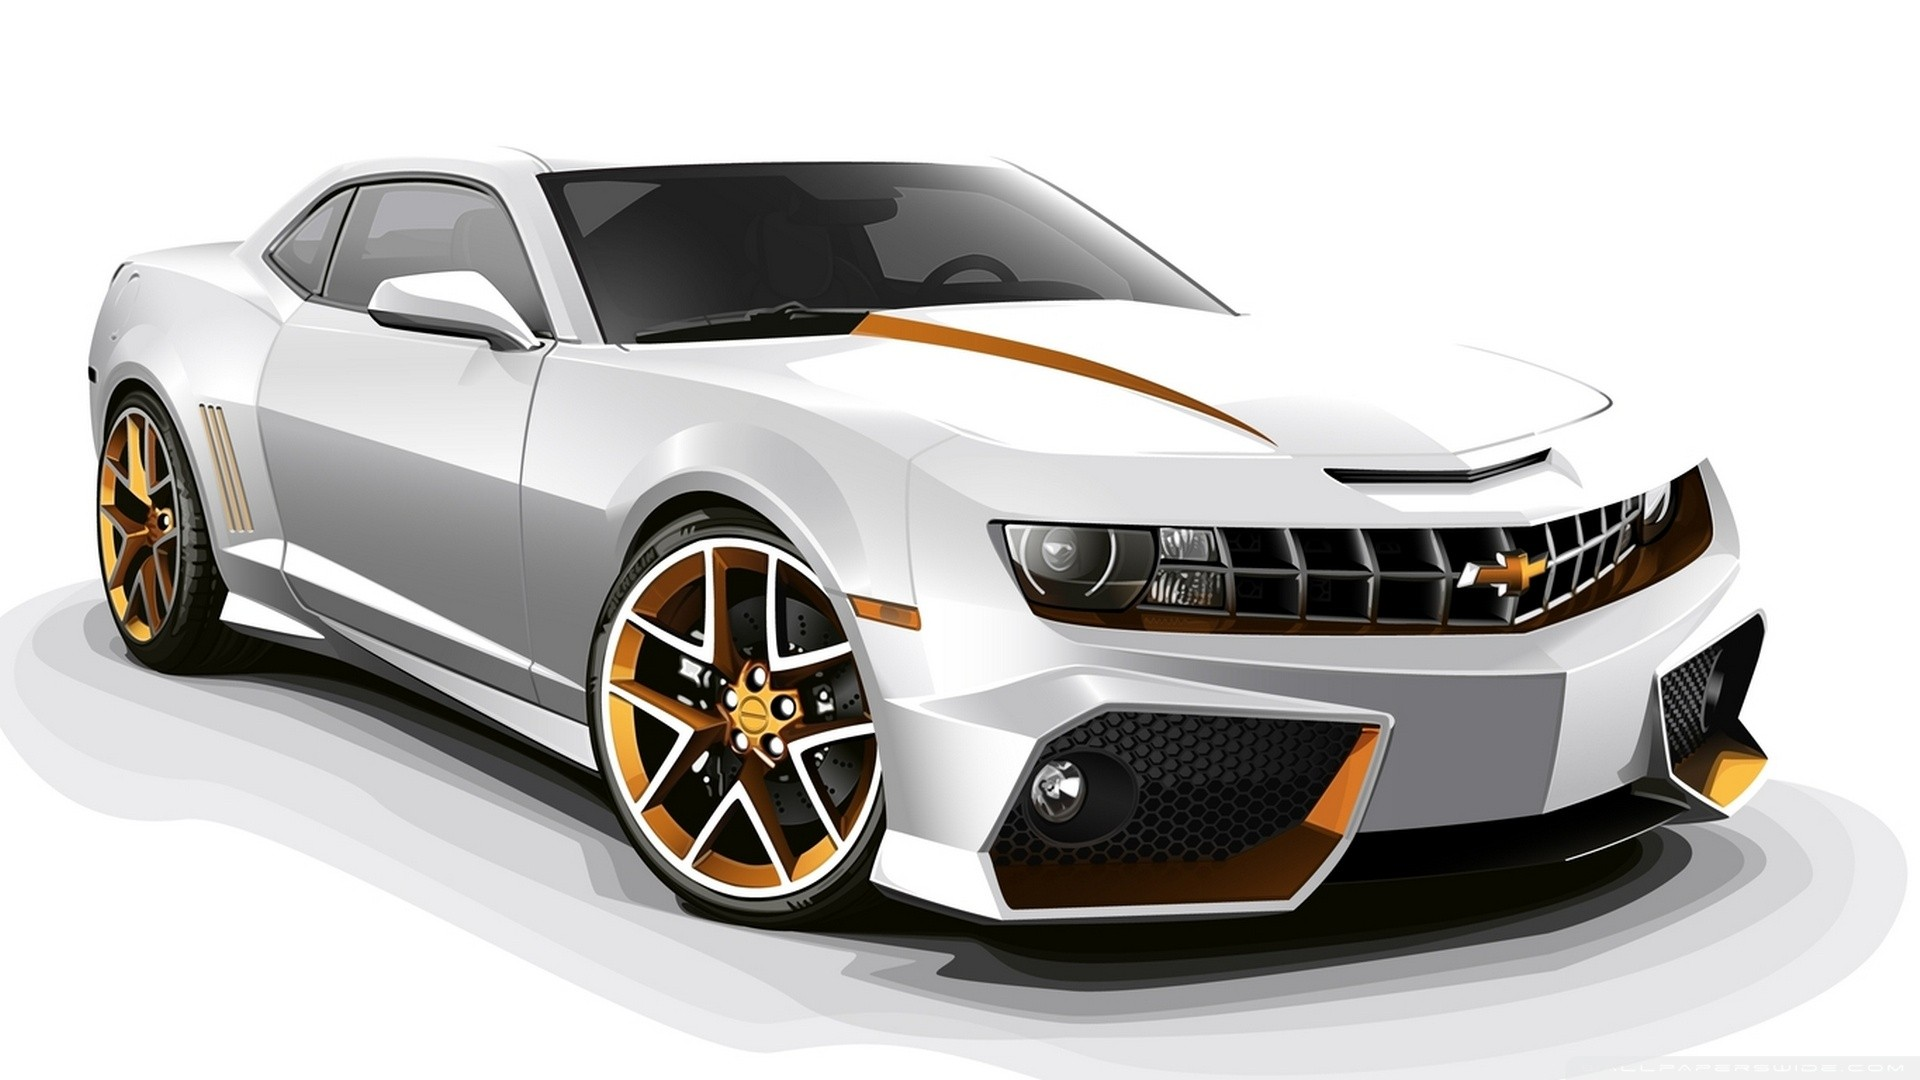 Cars Chevrolet Camaro ss Desktop Wallpaper Unique HD Wallpapers 1920x1080